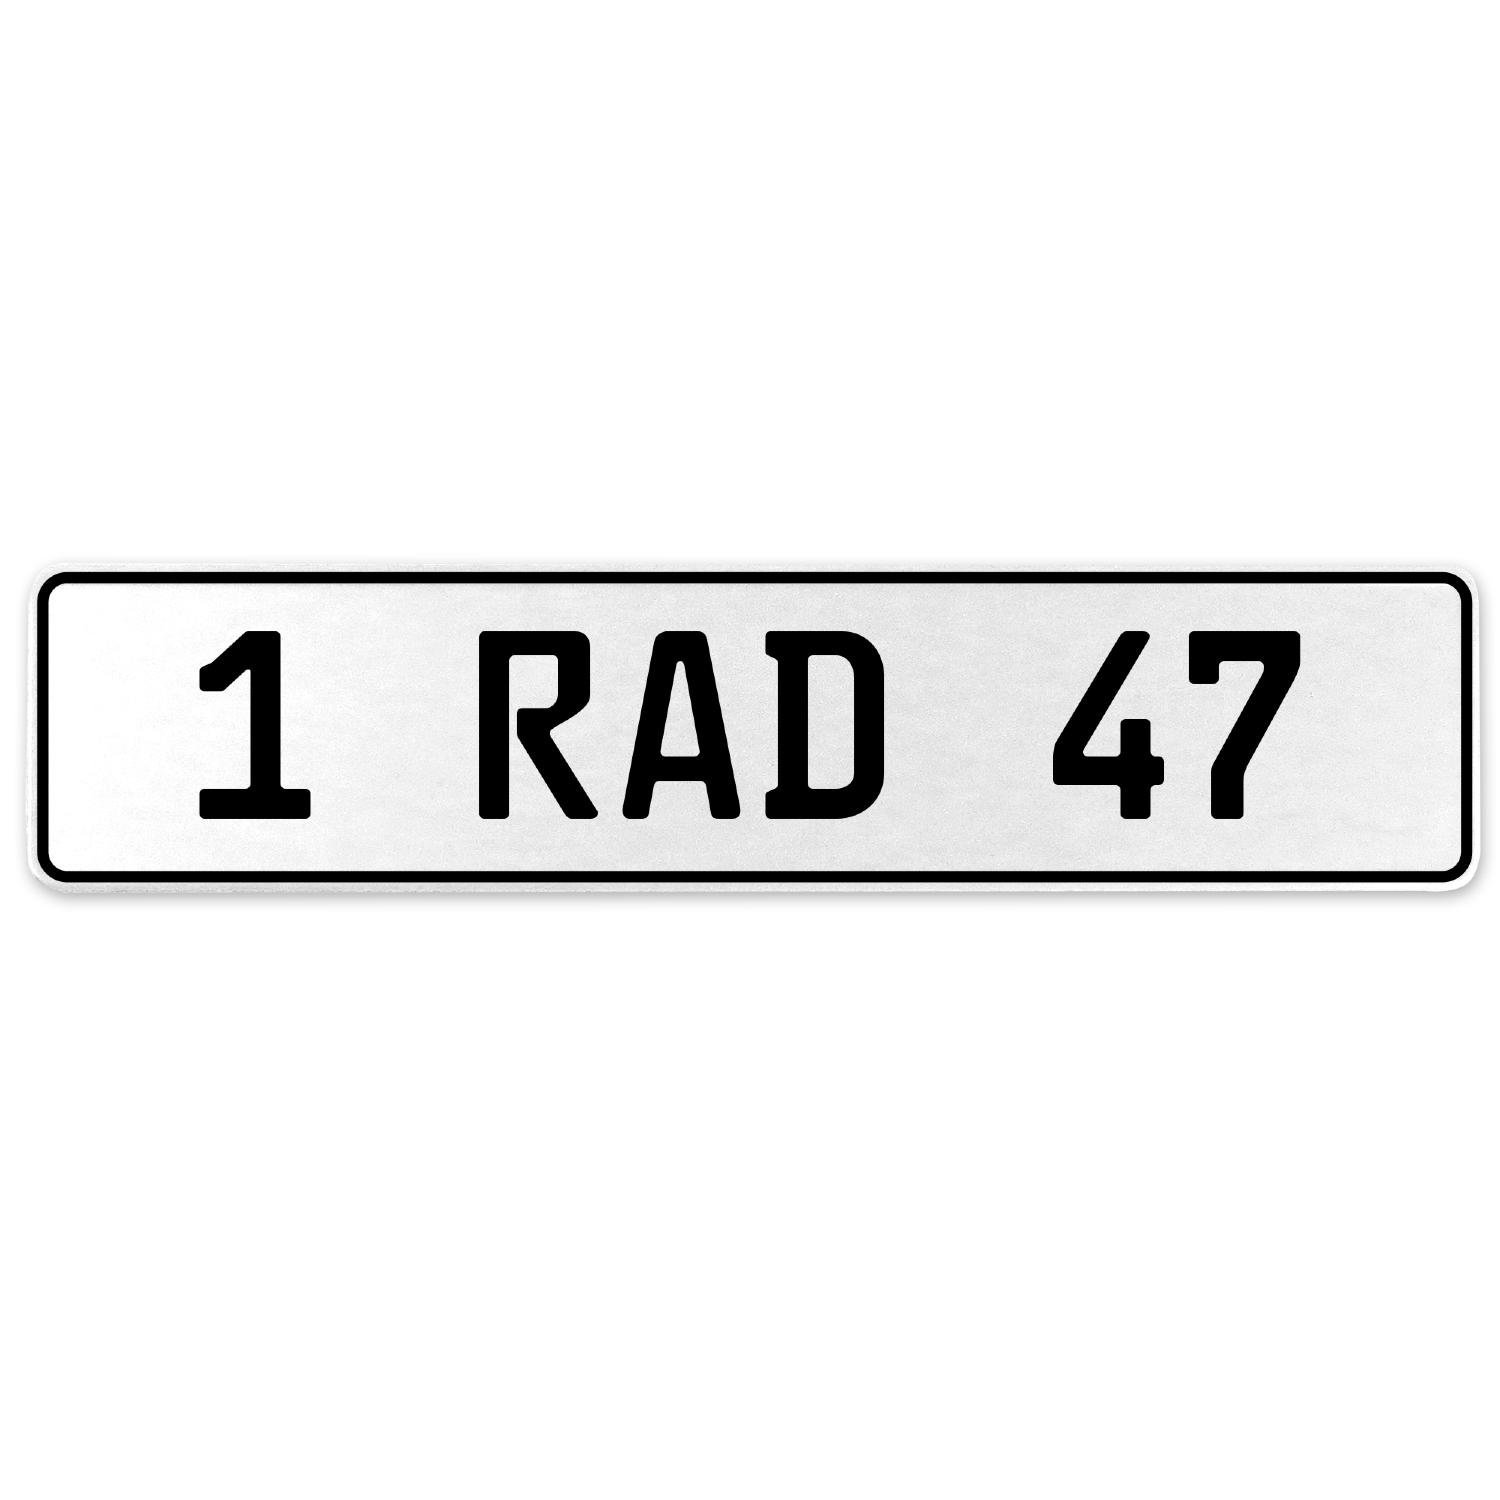 Vintage Parts 554050 1 RAD 47 White Stamped Aluminum European License Plate